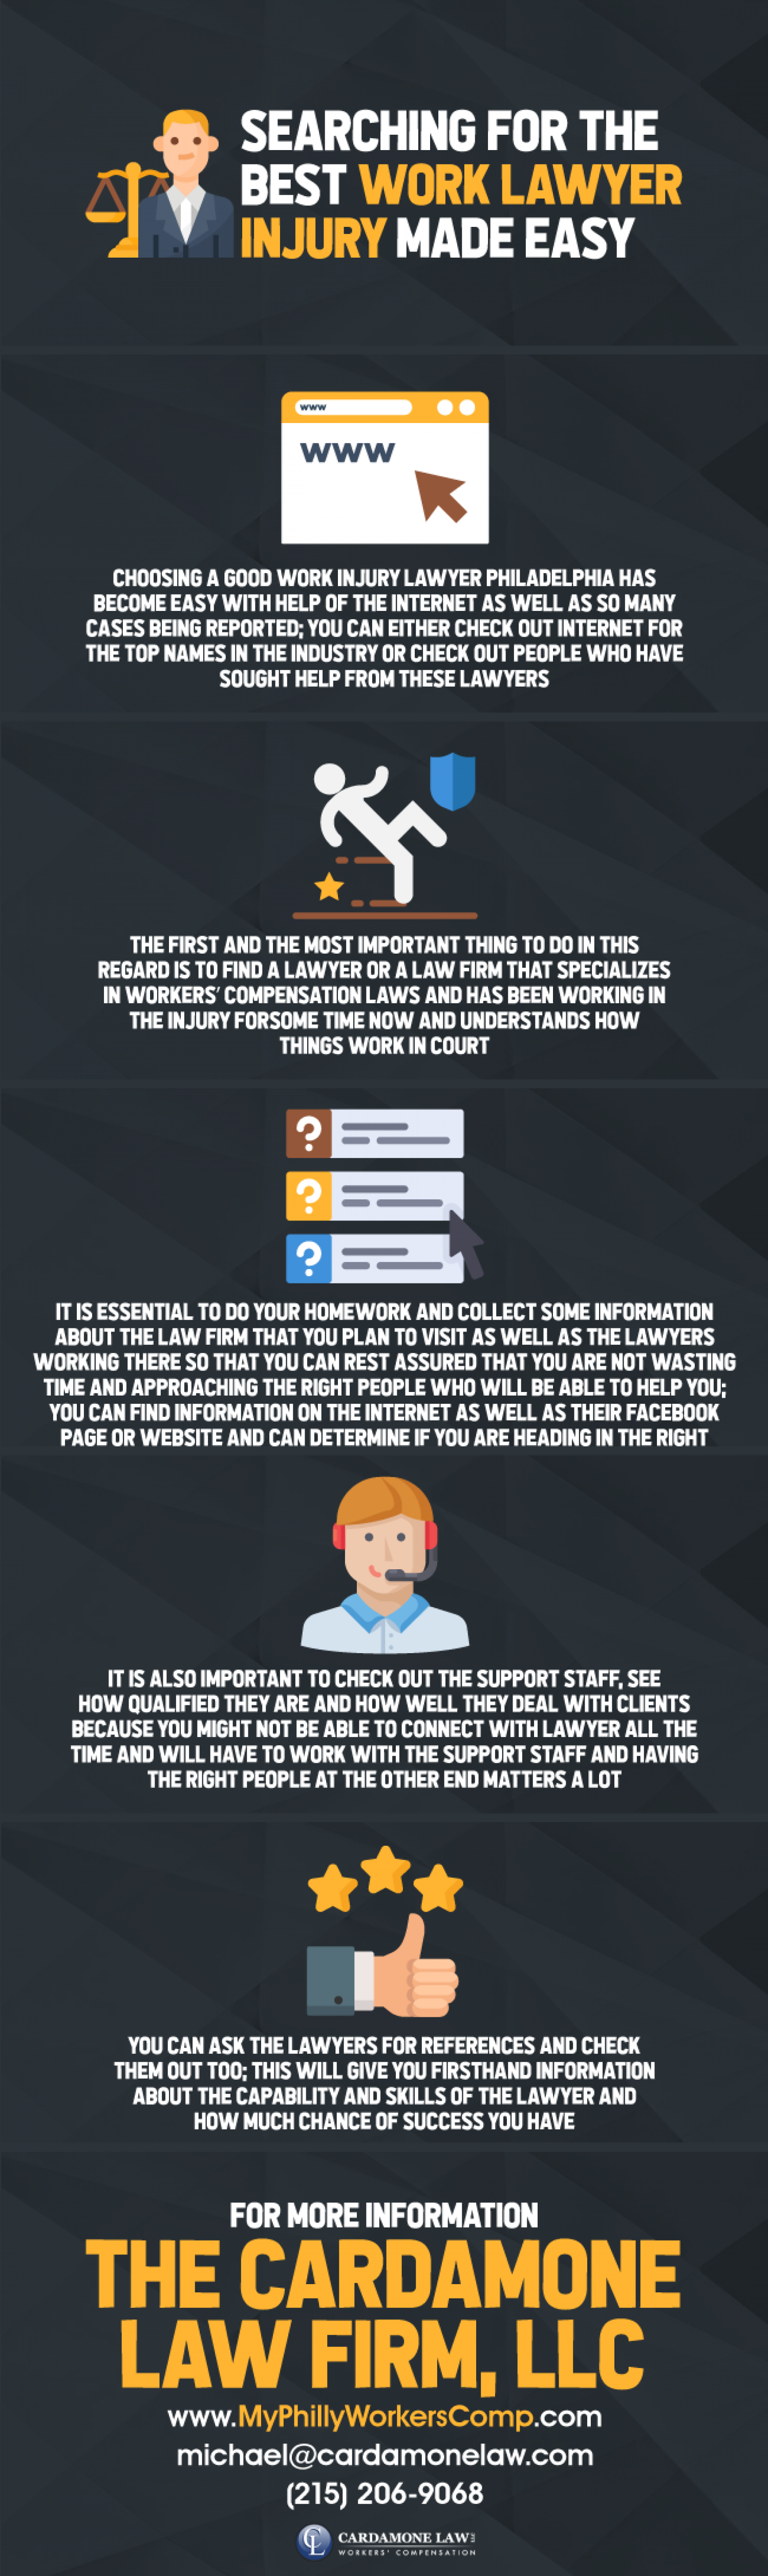 Searching for the Best Work Lawyer Injury Made Easy Infographic